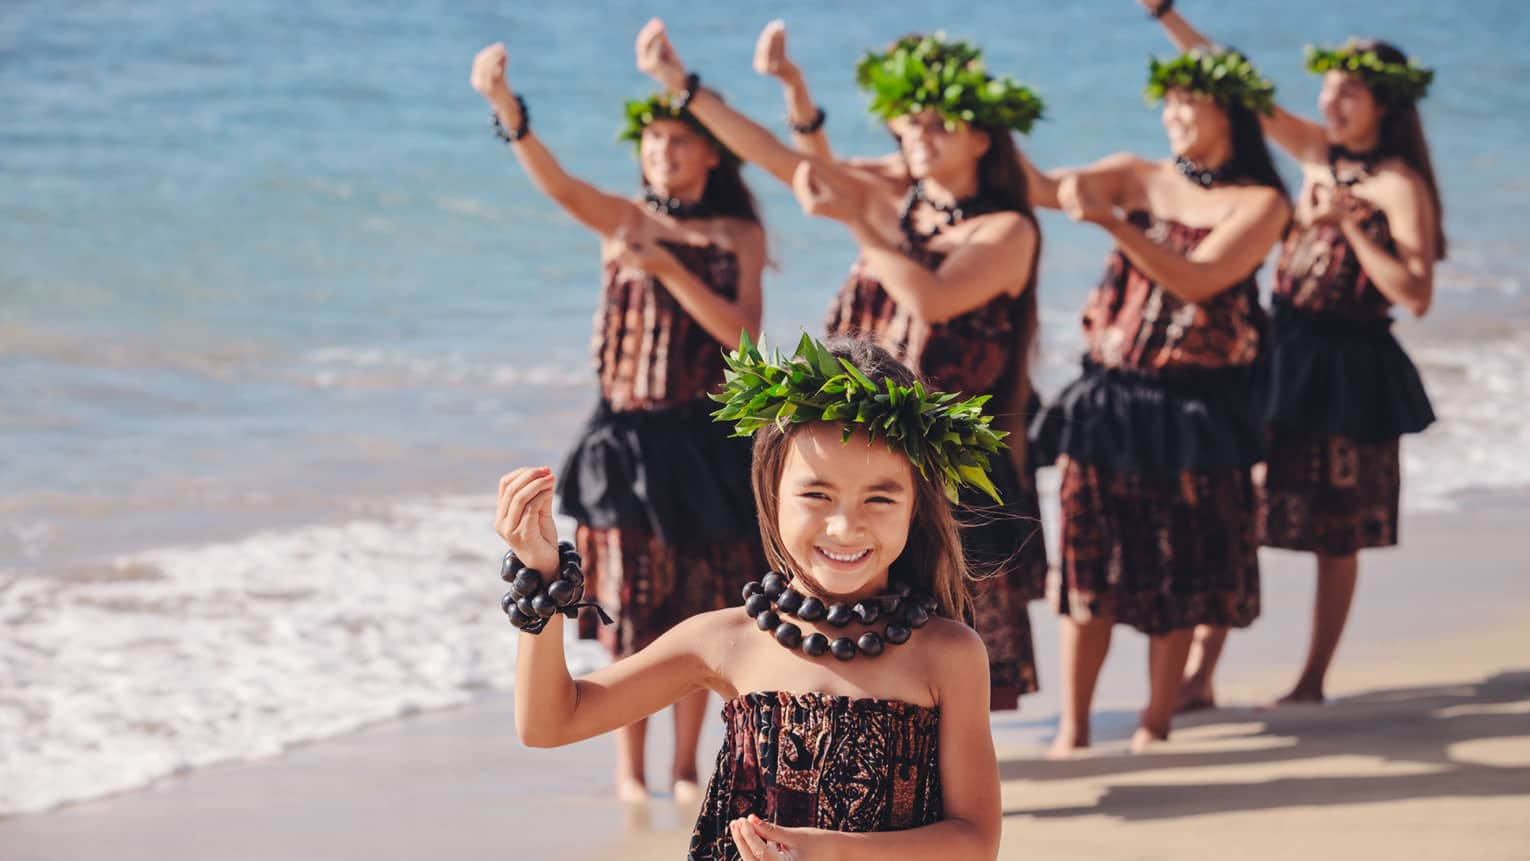 Hula dancing, smiling young girl, group of women behind her on beach, wearing traditional floral crowns, dresses